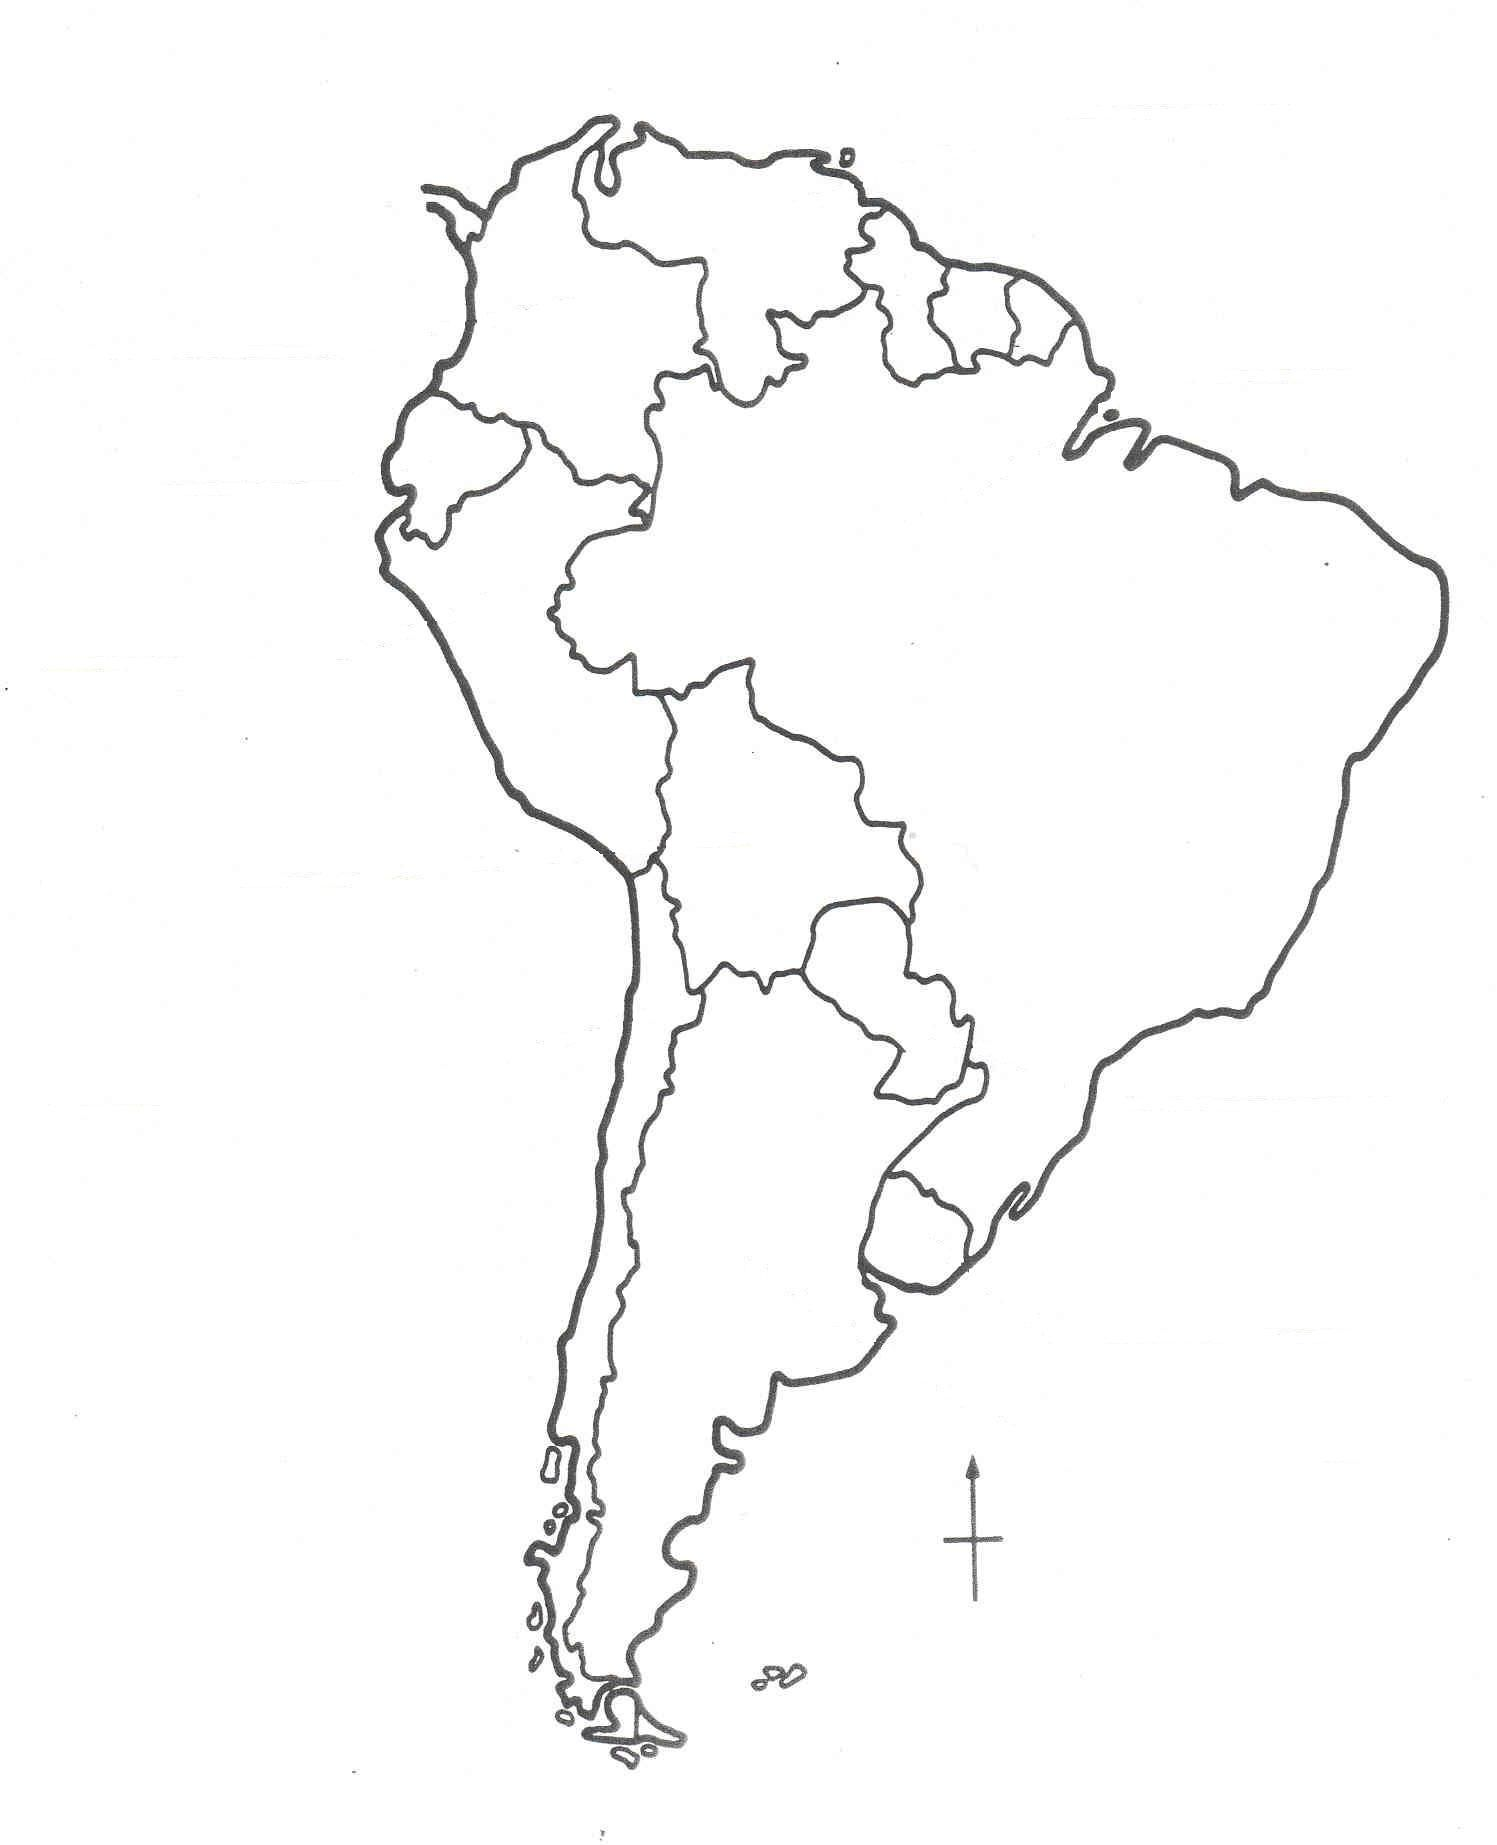 south america map coloring page south america coloring page free maps coloring pages america coloring page map south